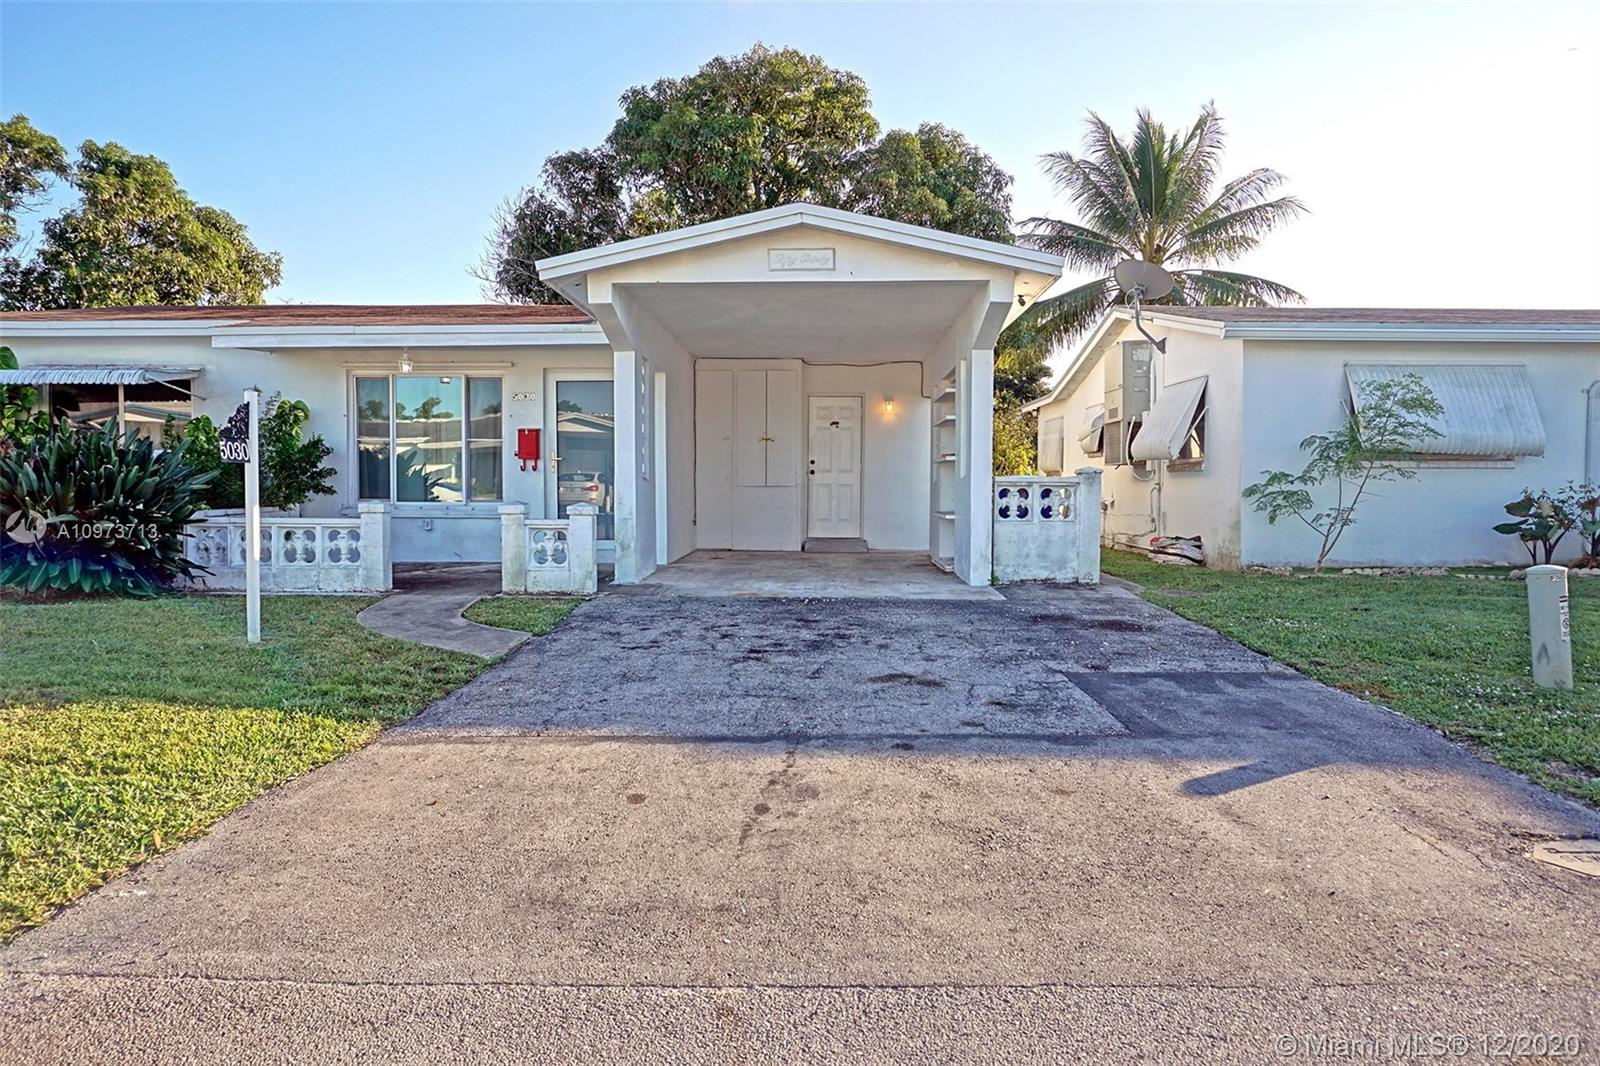 Details for 5030 42nd St, Lauderdale Lakes, FL 33319